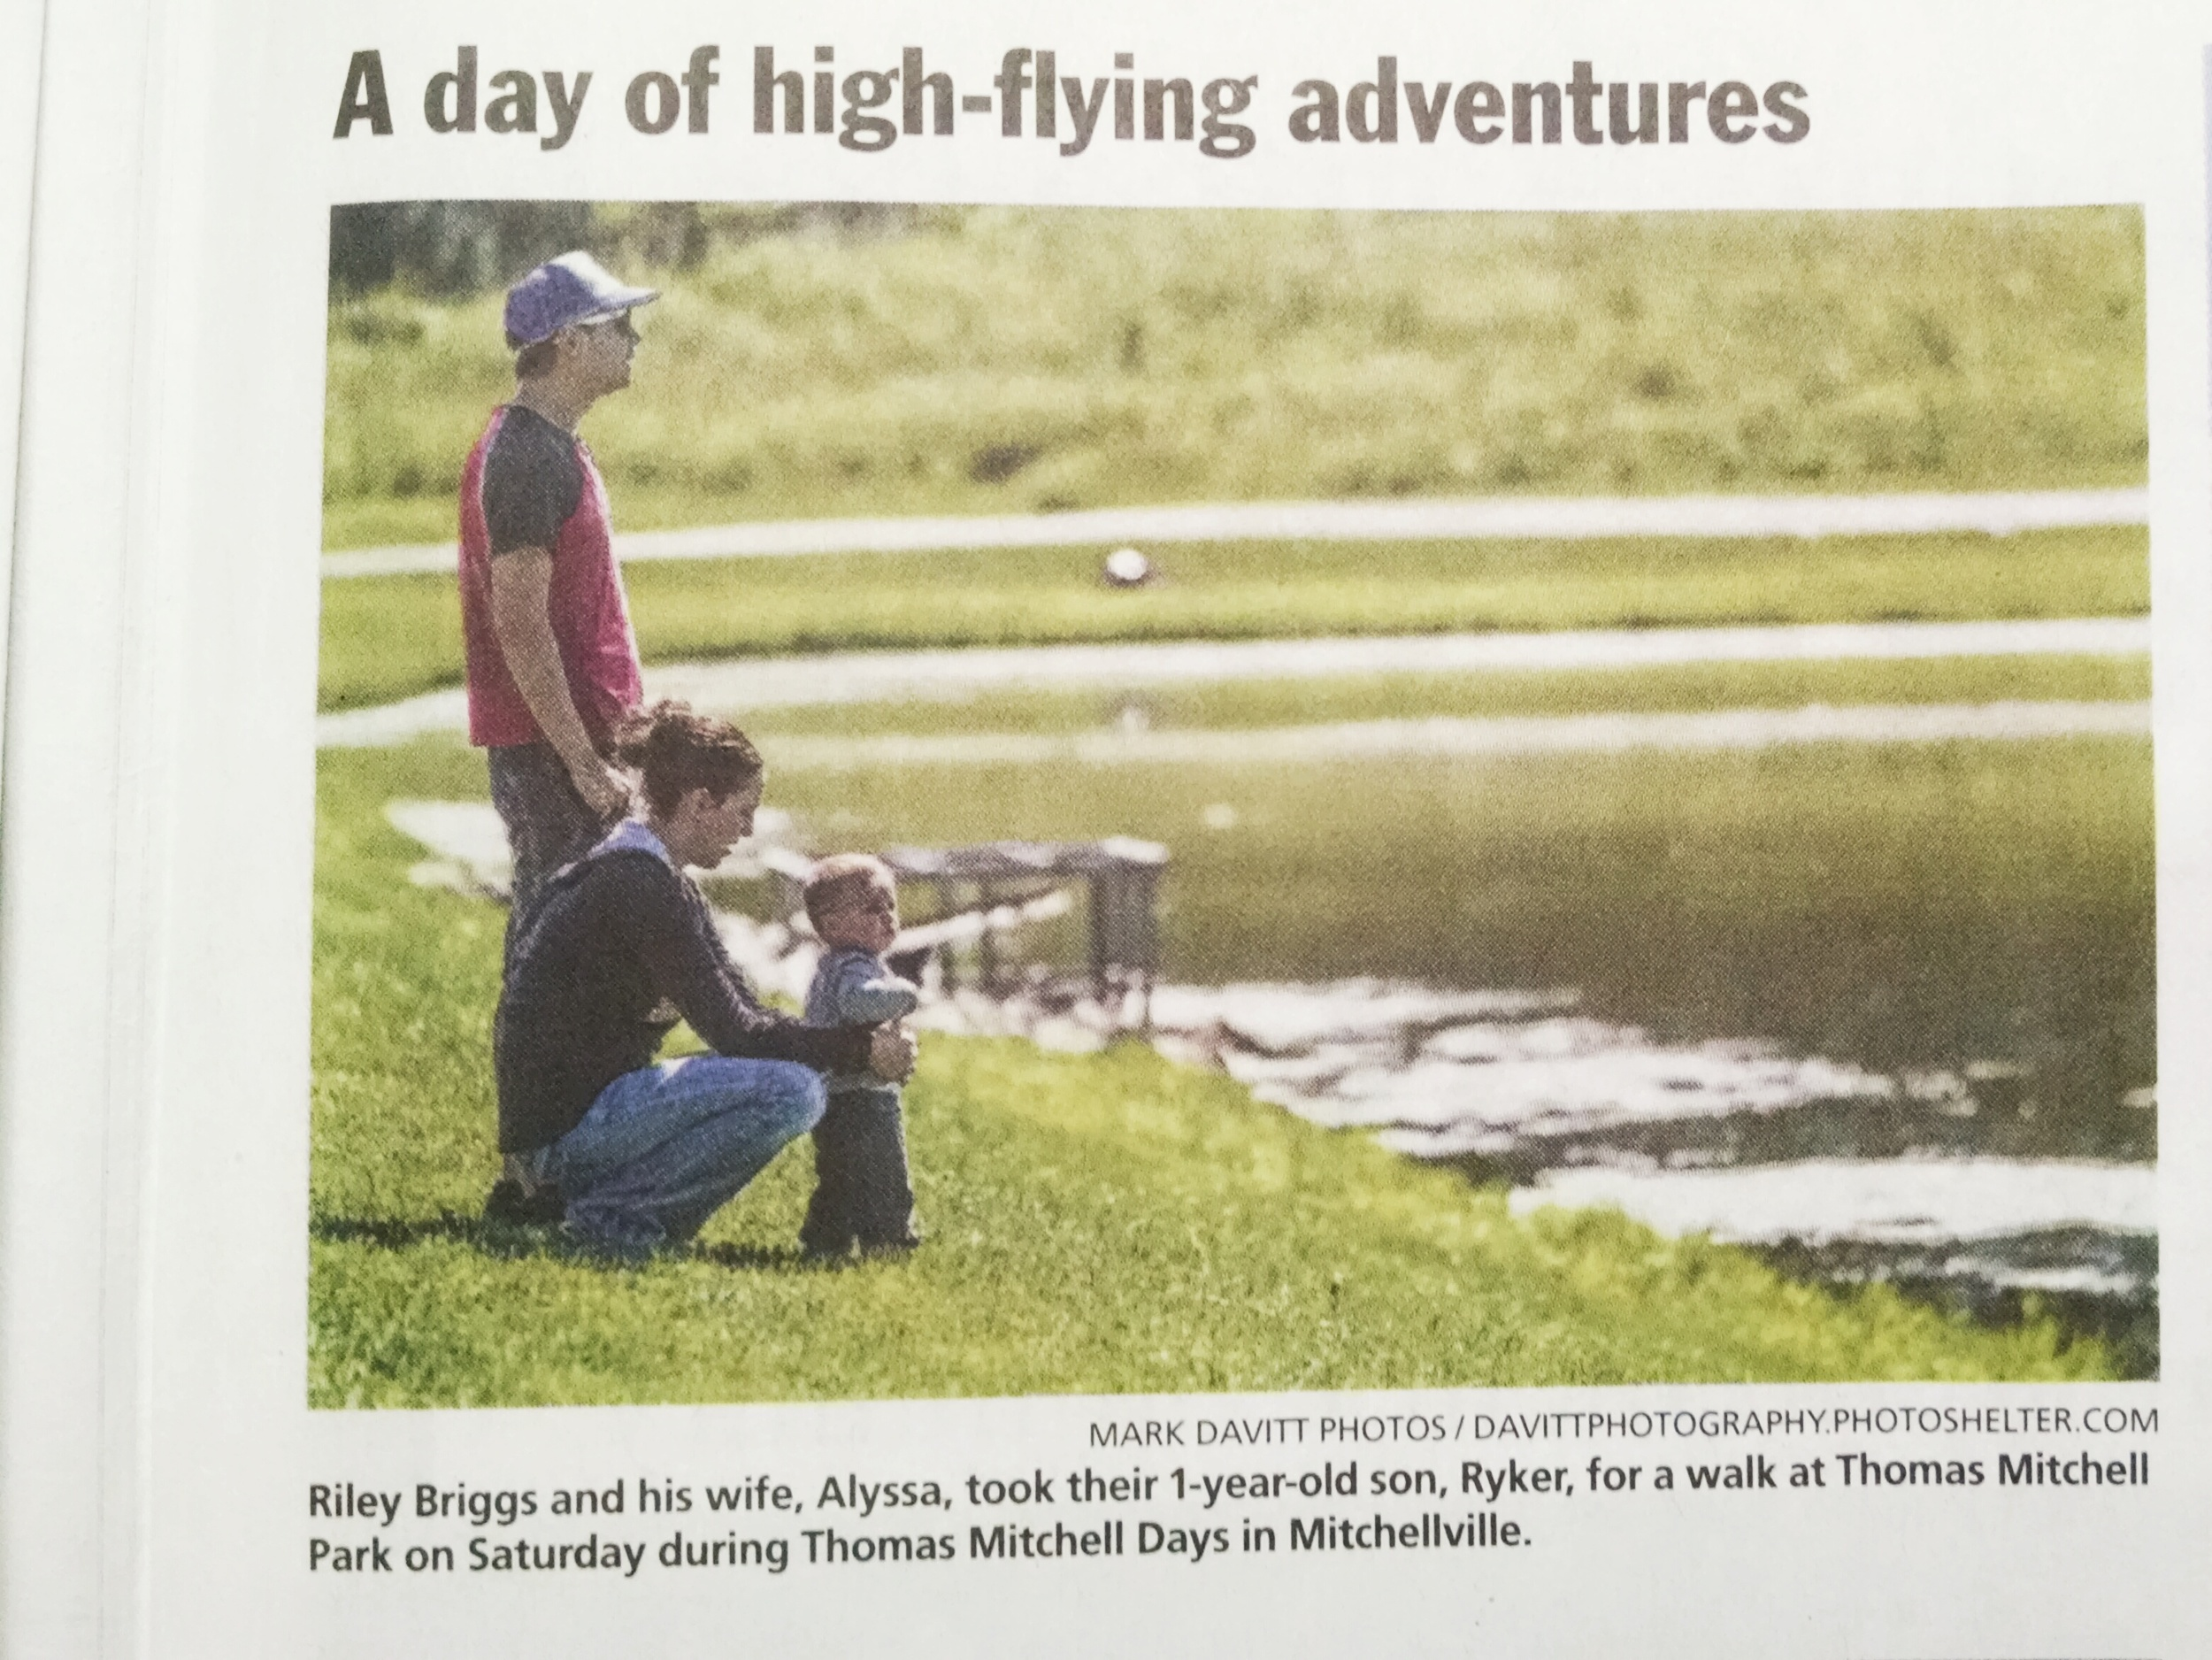 Riley Briggs and his wife, Alyssa, took their 1-year-old son, Ryker, for a walk at Thomas Mitchell Park on Saturday during Thomas Mitchell Days in Mitchellville.